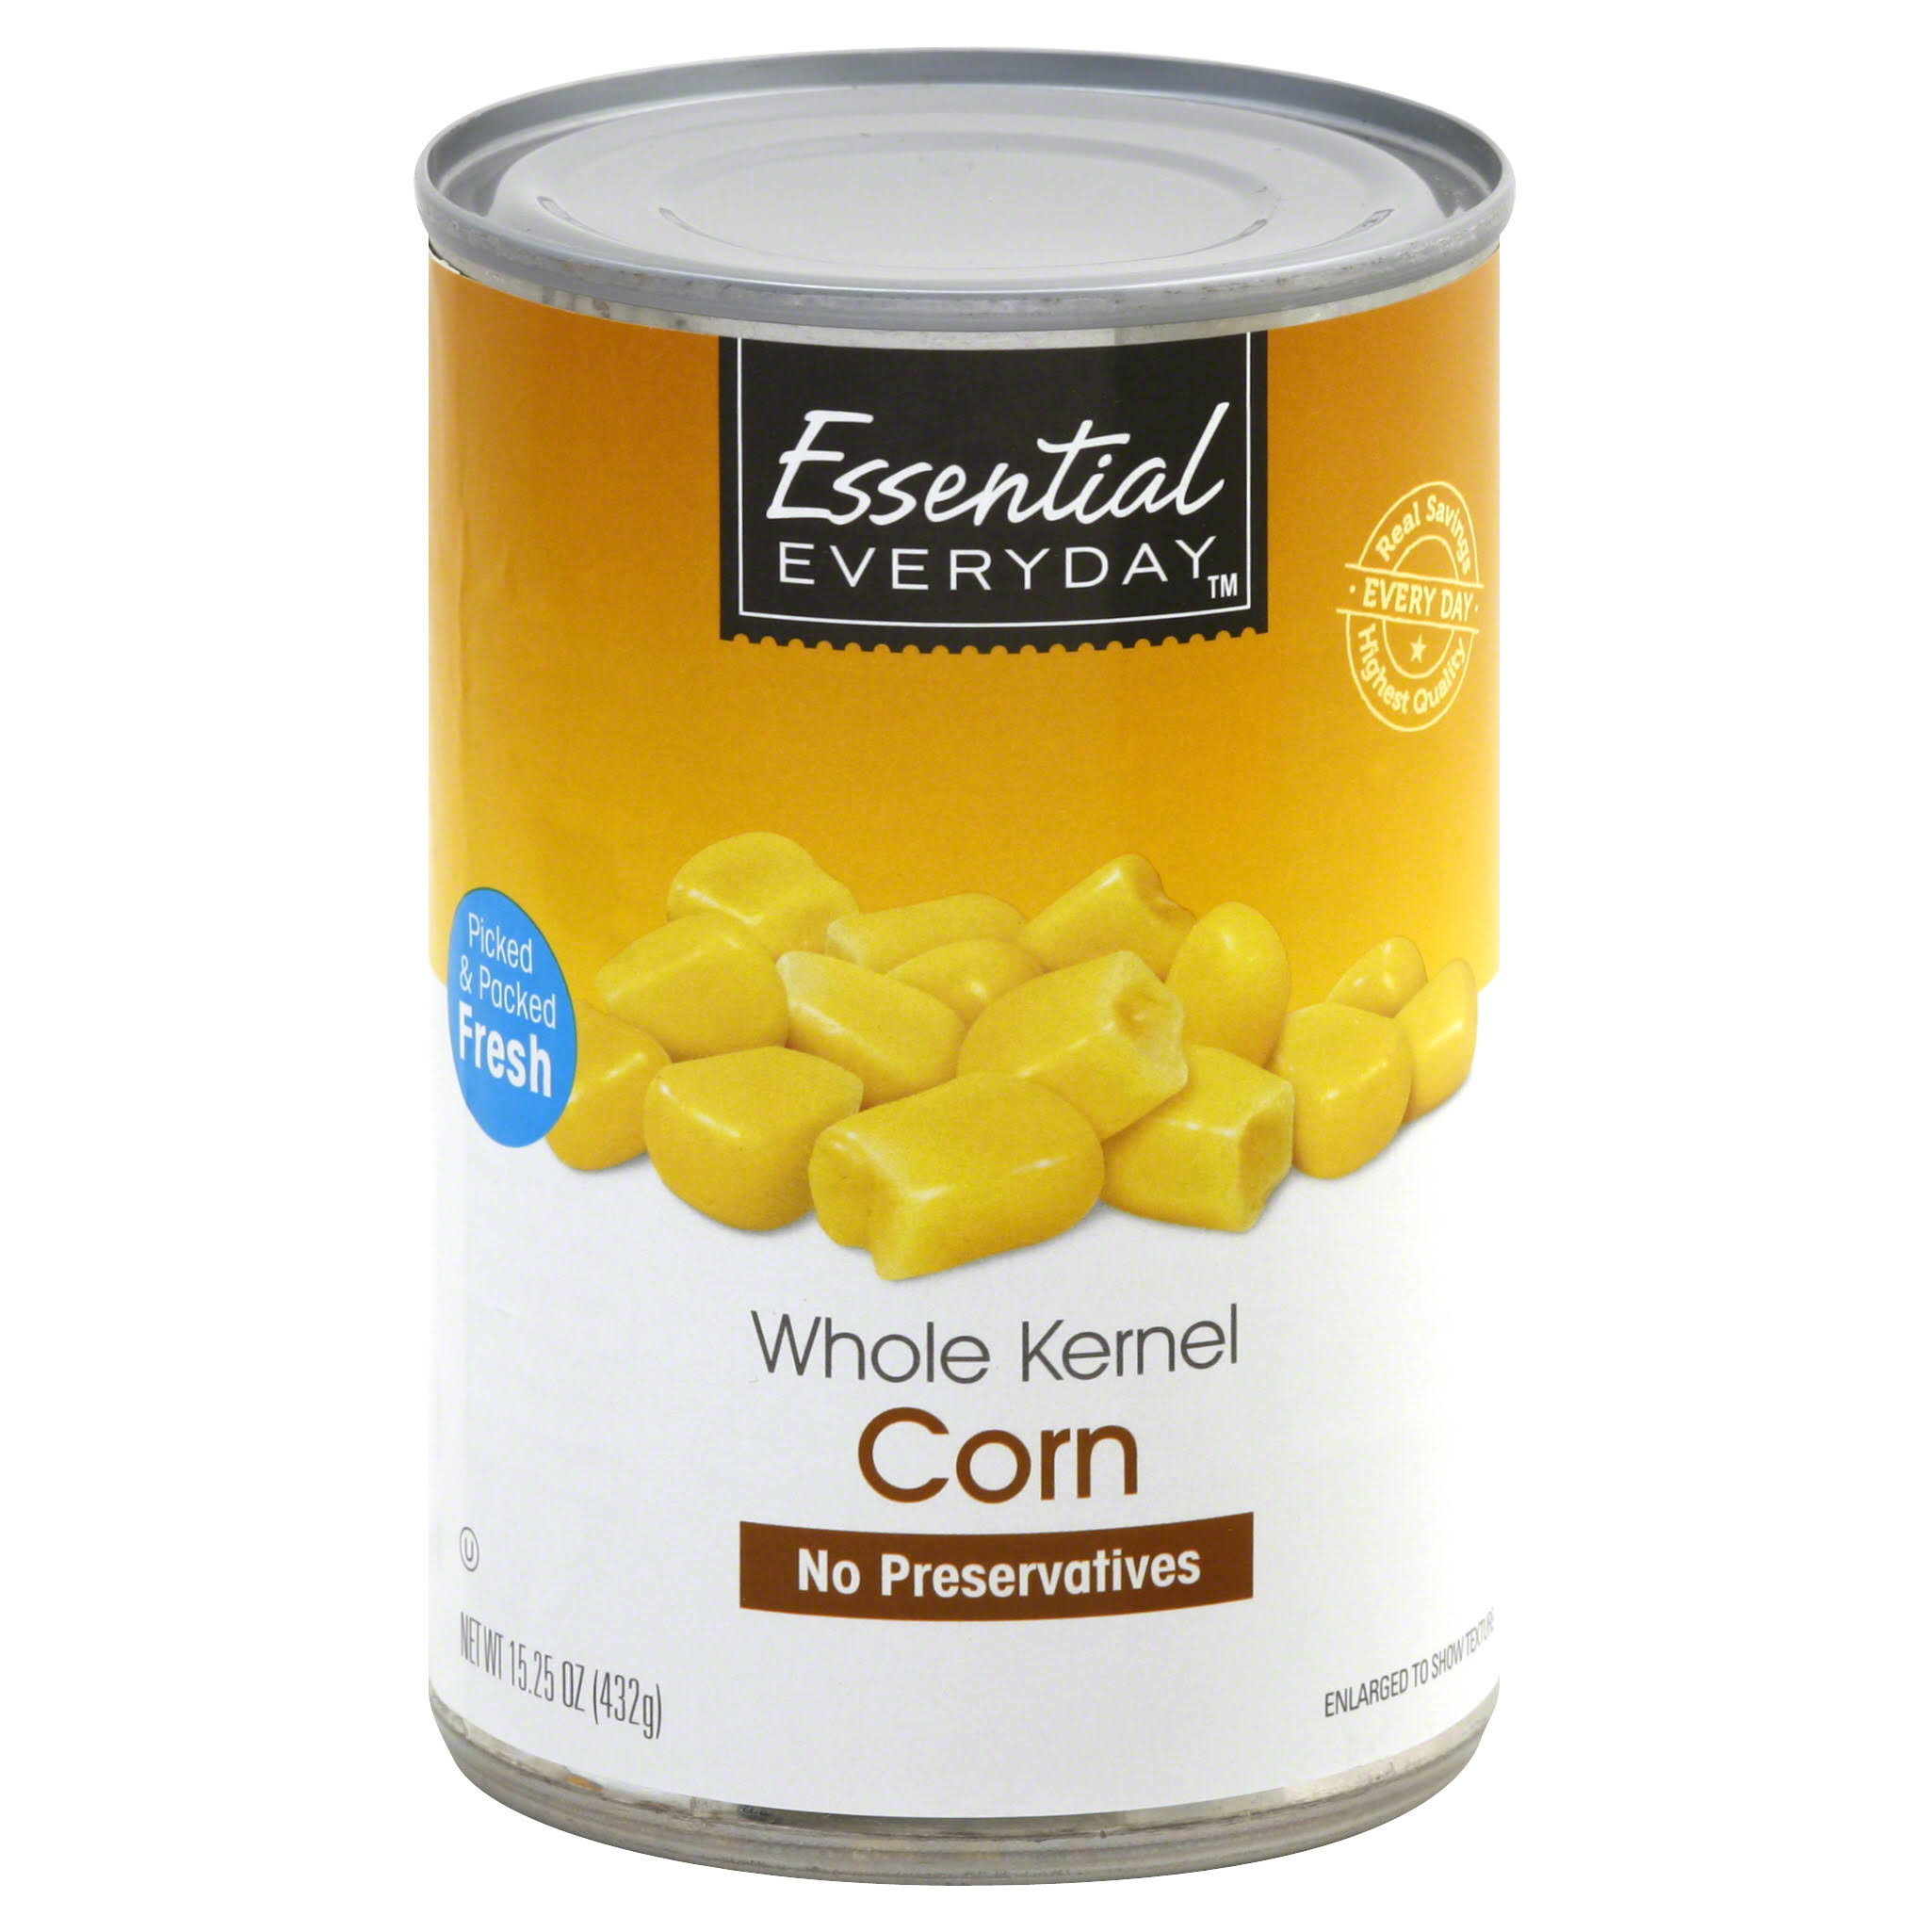 Essential Everyday Corn